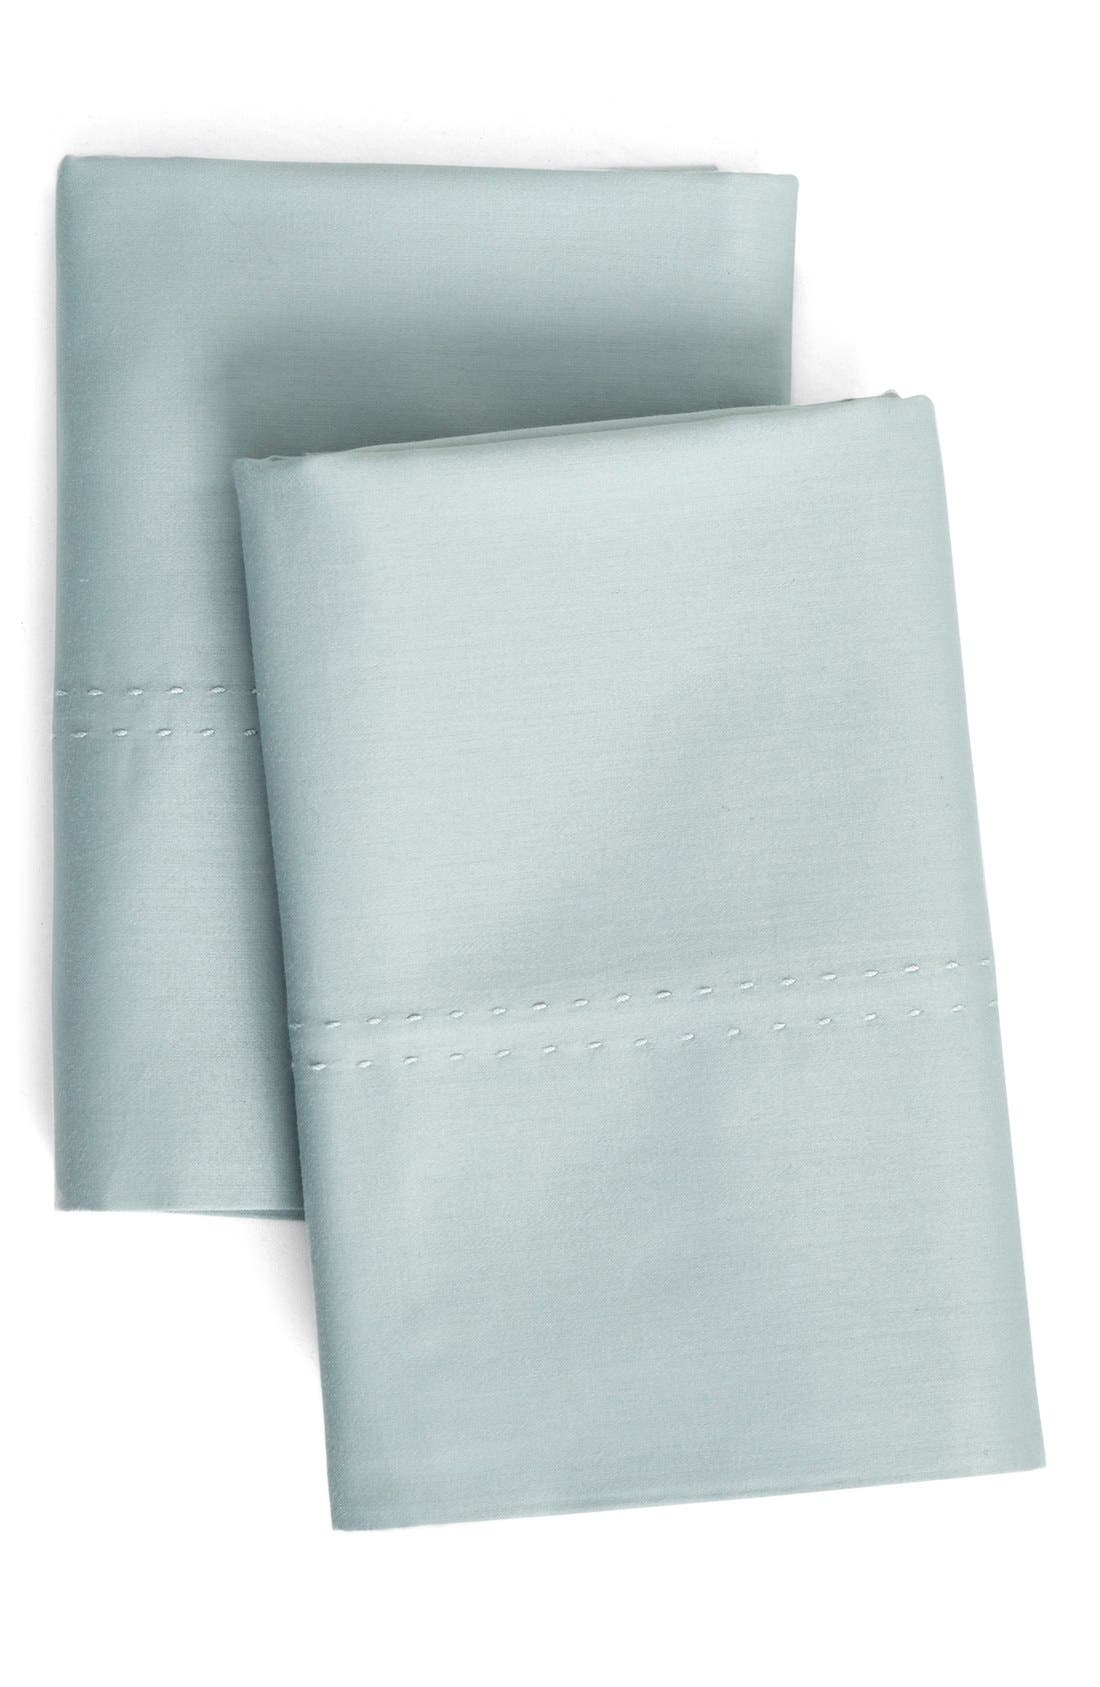 Alternate Image 1 Selected - Nordstrom at Home 400 Thread Count Standard Pillowcases (Set of 2)